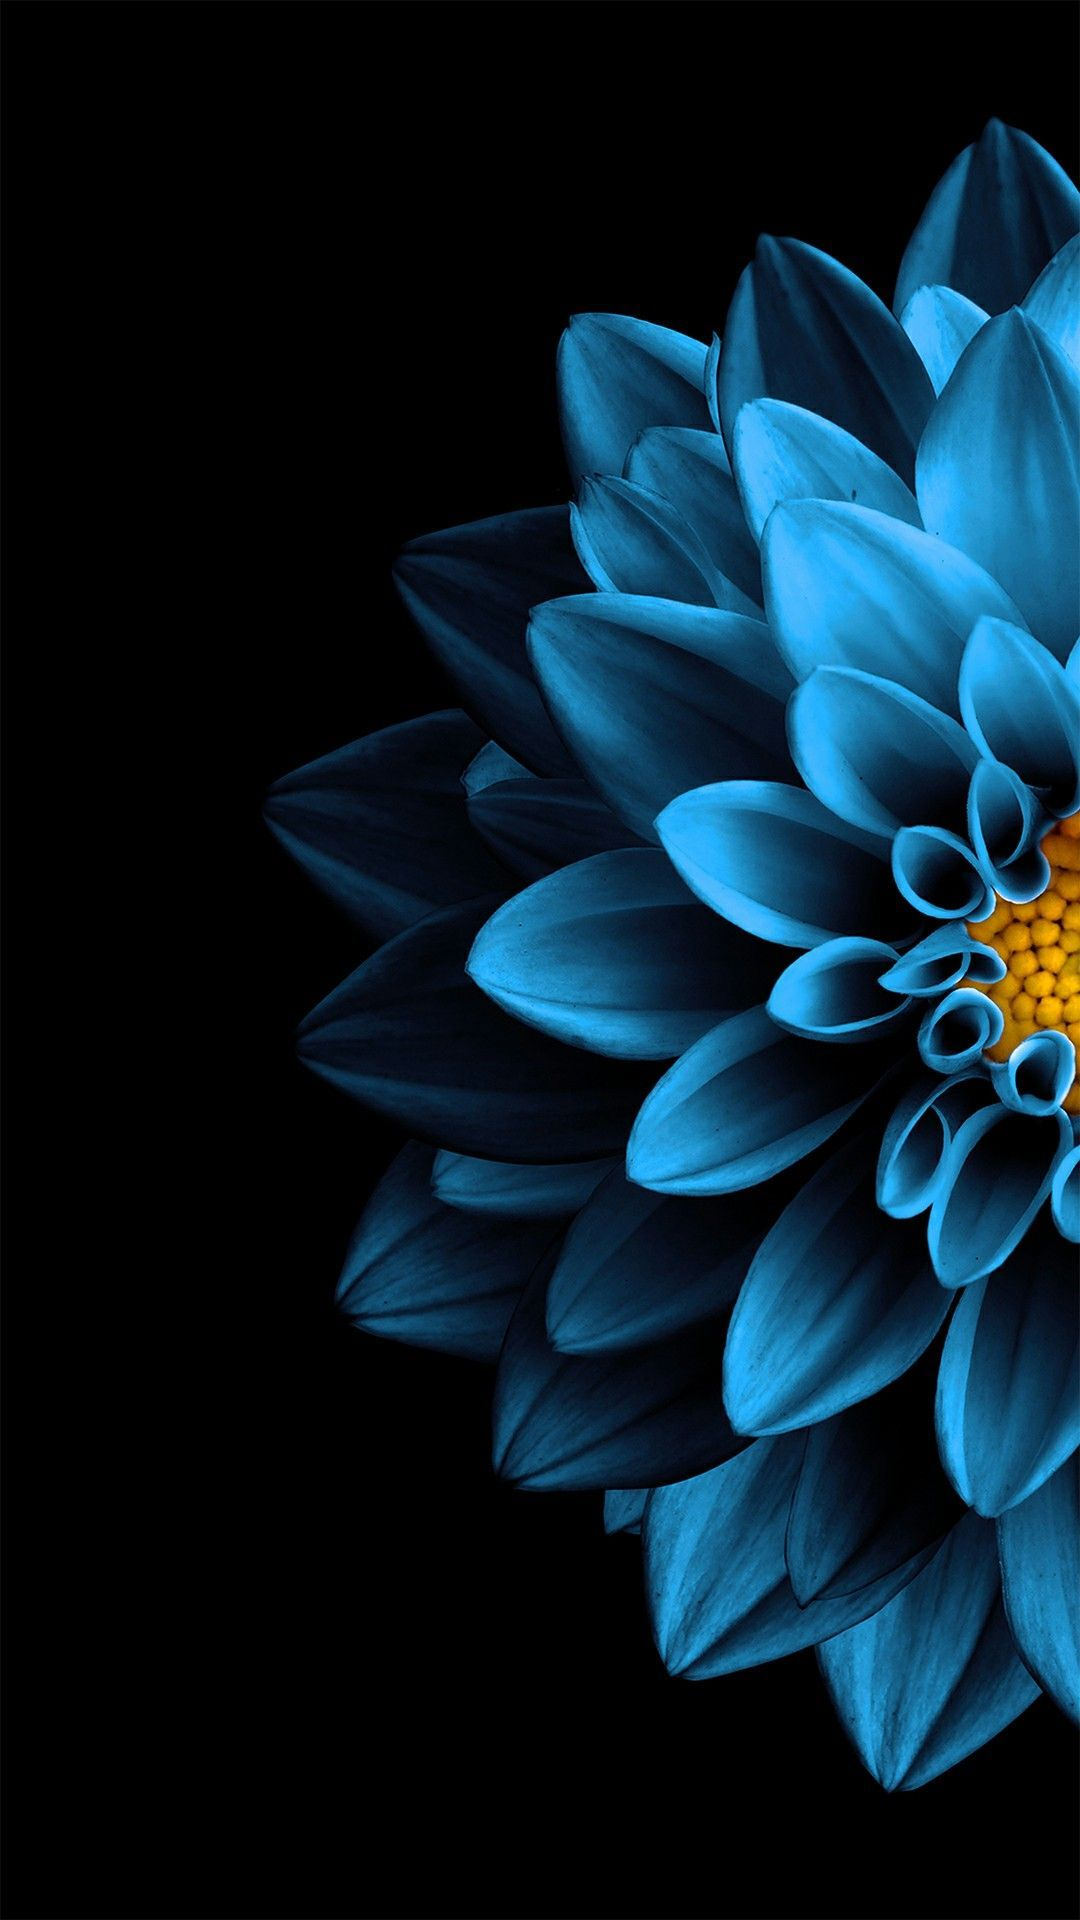 Bright Blue Dahlia Black Background Wallpaper In 2020 Flower Background Iphone Black Background Wallpaper Blue Wallpaper Iphone